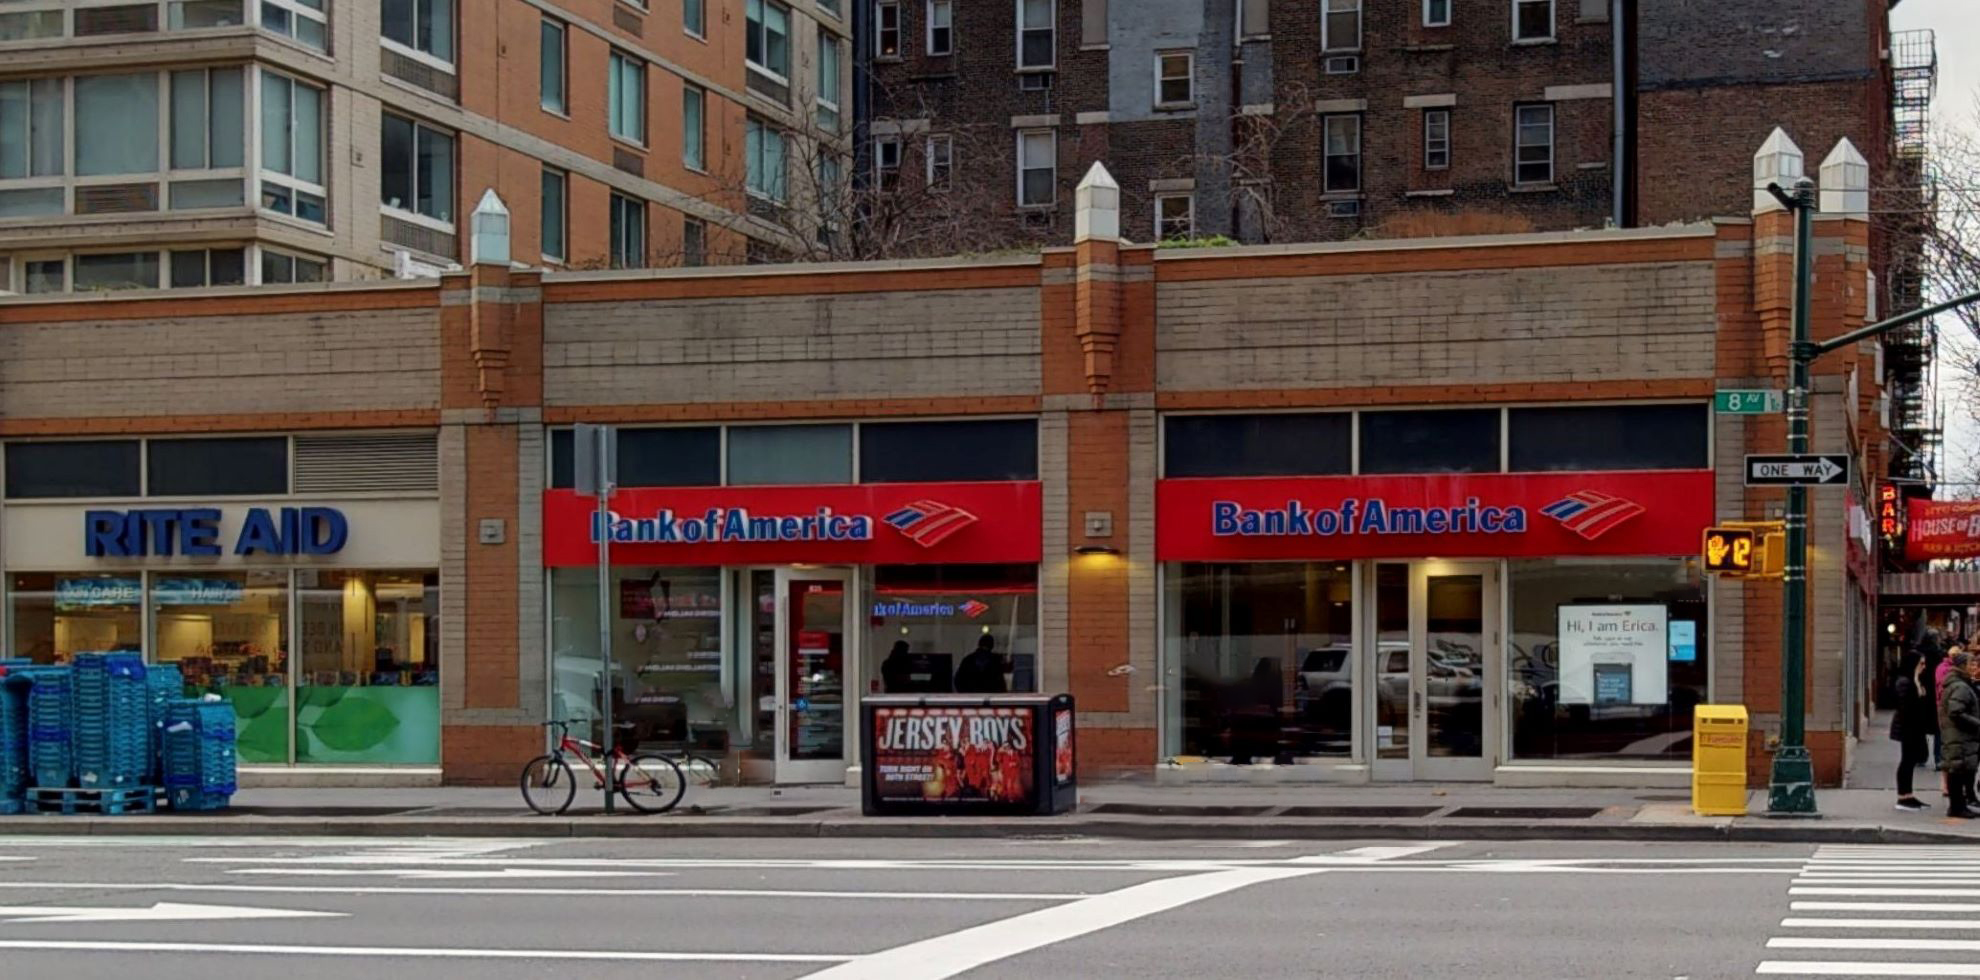 Bank of America financial center with walk-up ATM | 835 8th Ave, New York, NY 10019